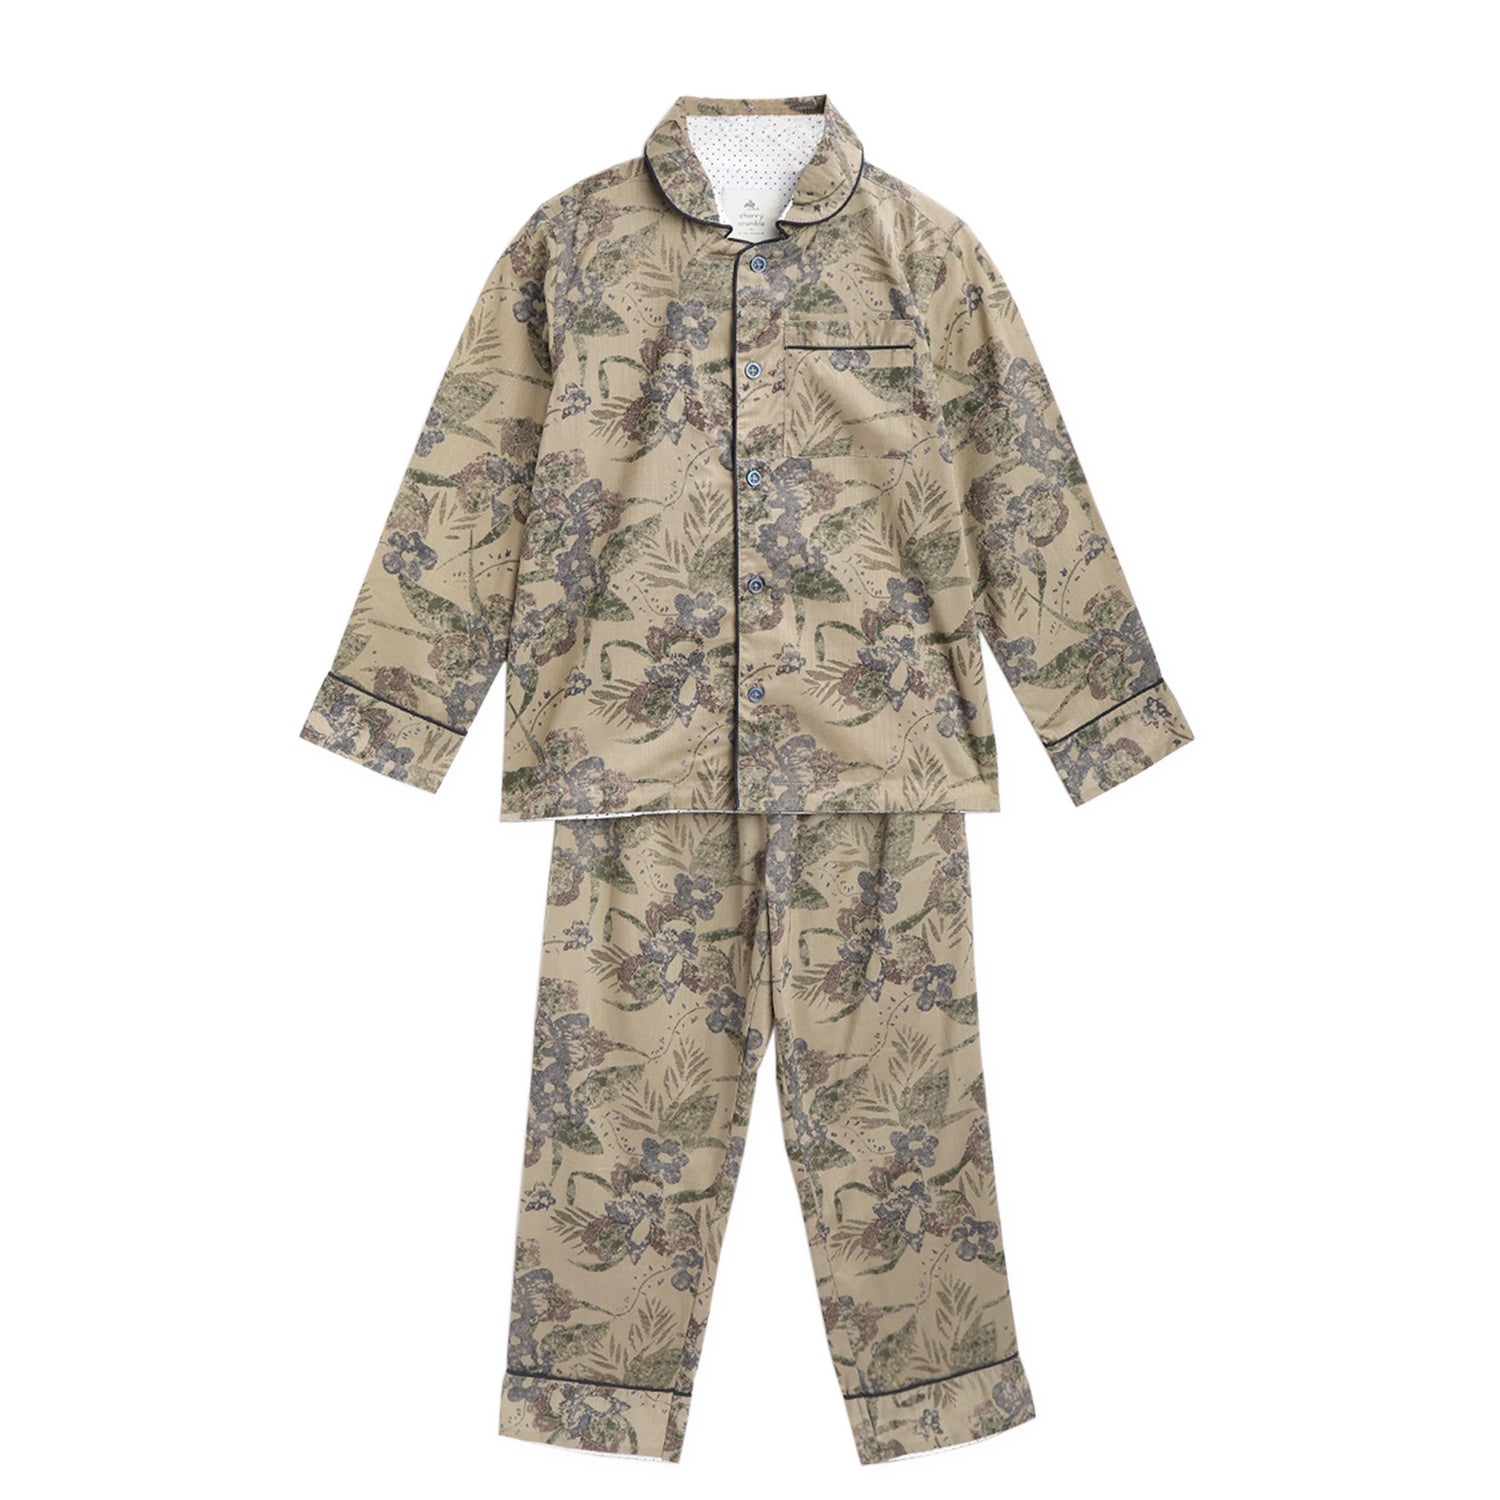 Cherry-Crumble-Kids-Full-Sleeve-Regular-Sleeve-Collared-Floral-Printed-Shirt-&-Pyjama-Nightsuit